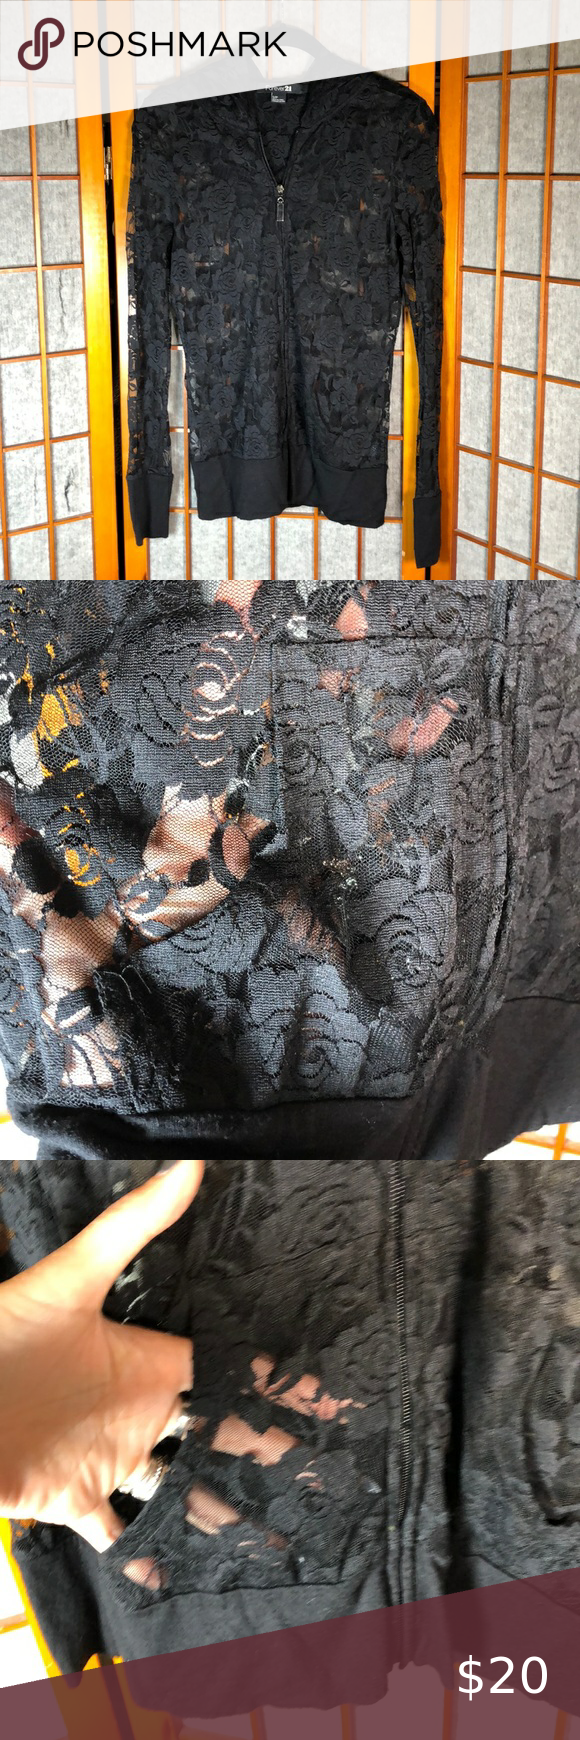 Gothic forever 21 gothic sheer lace hoodie Very cool romantic hoodie. This is an older piece that has been living in my closet a while. Perfect condition. It's the most amazing hoodie for dressing up  #goth #gothic #witch #festival Forever 21 Tops Sweatshirts & Hoodies